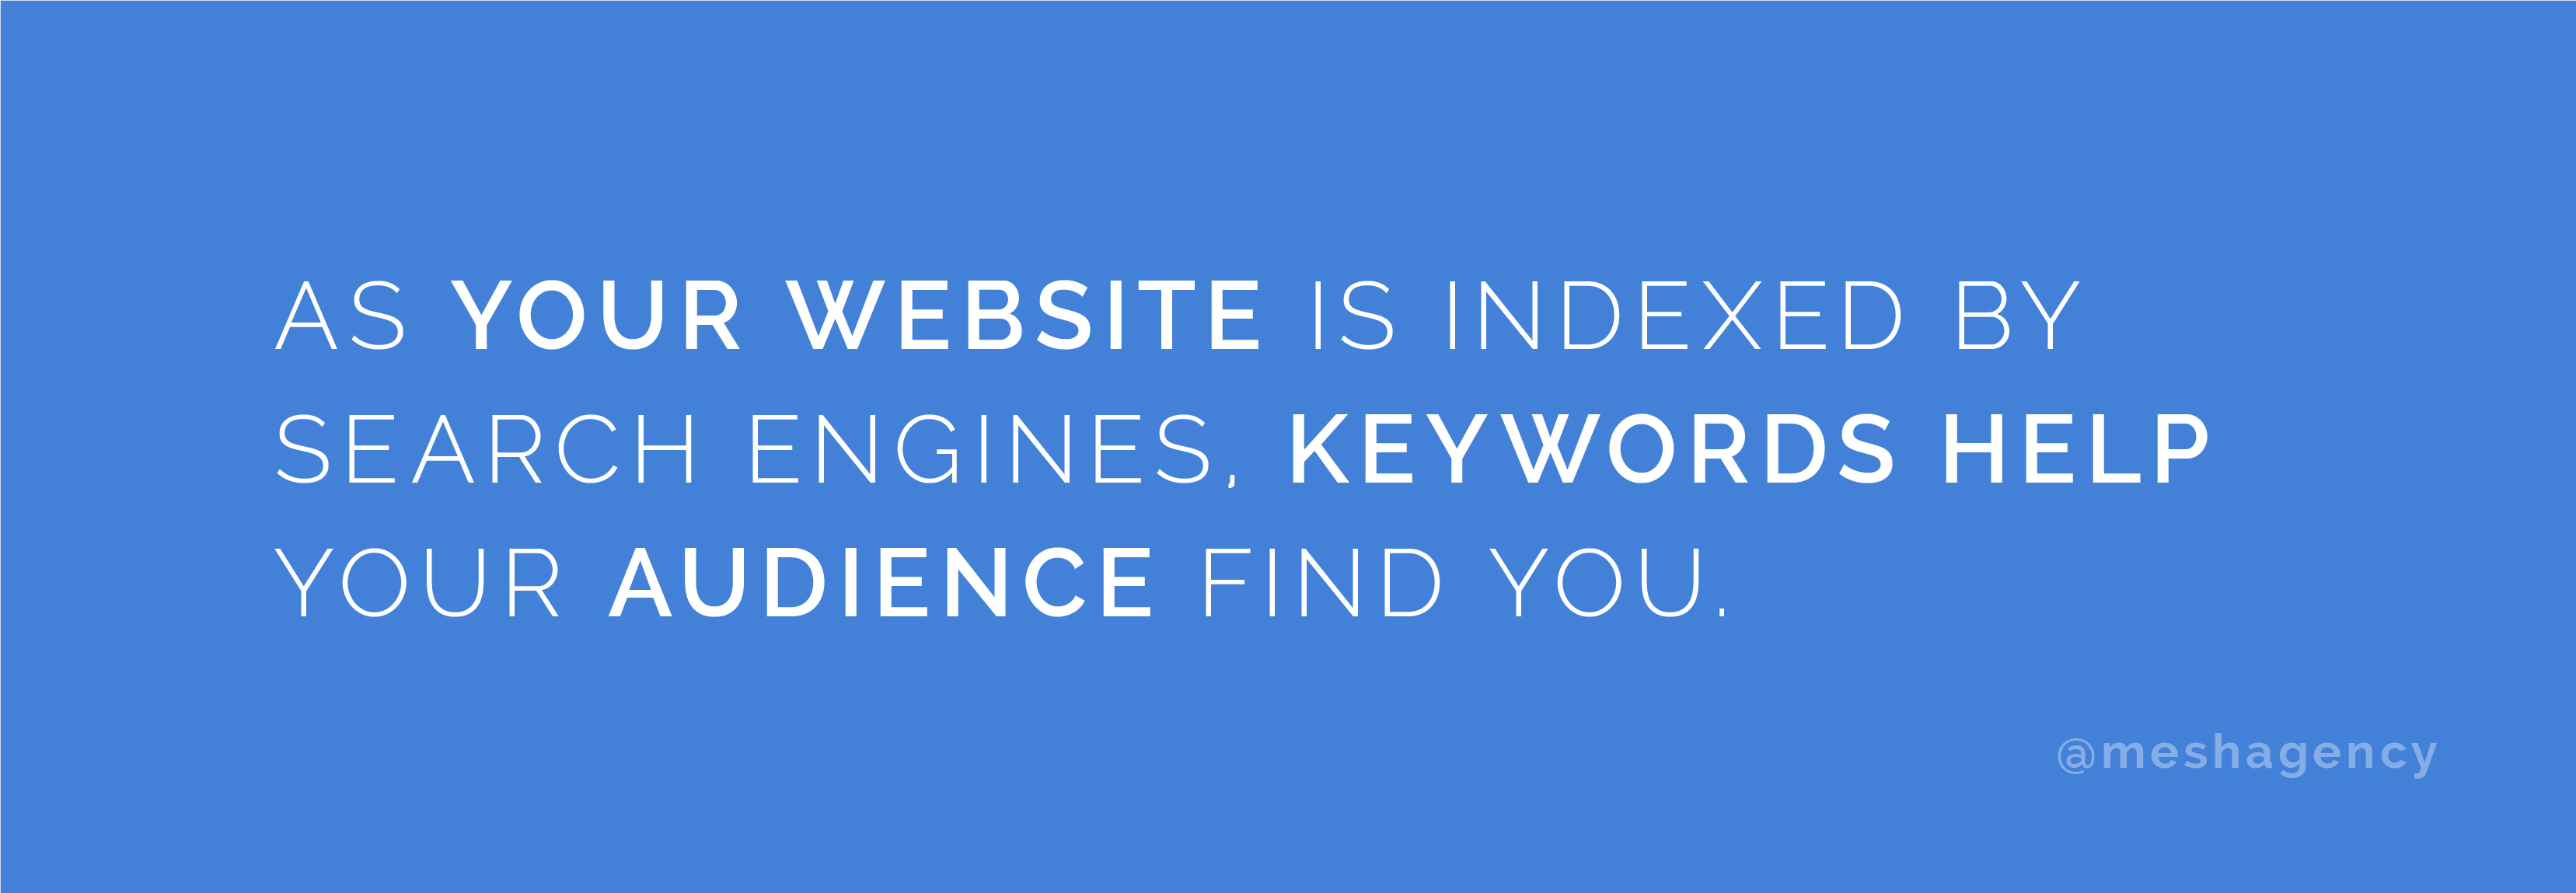 As your website content is indexed by search engines, keywords help your audience find you